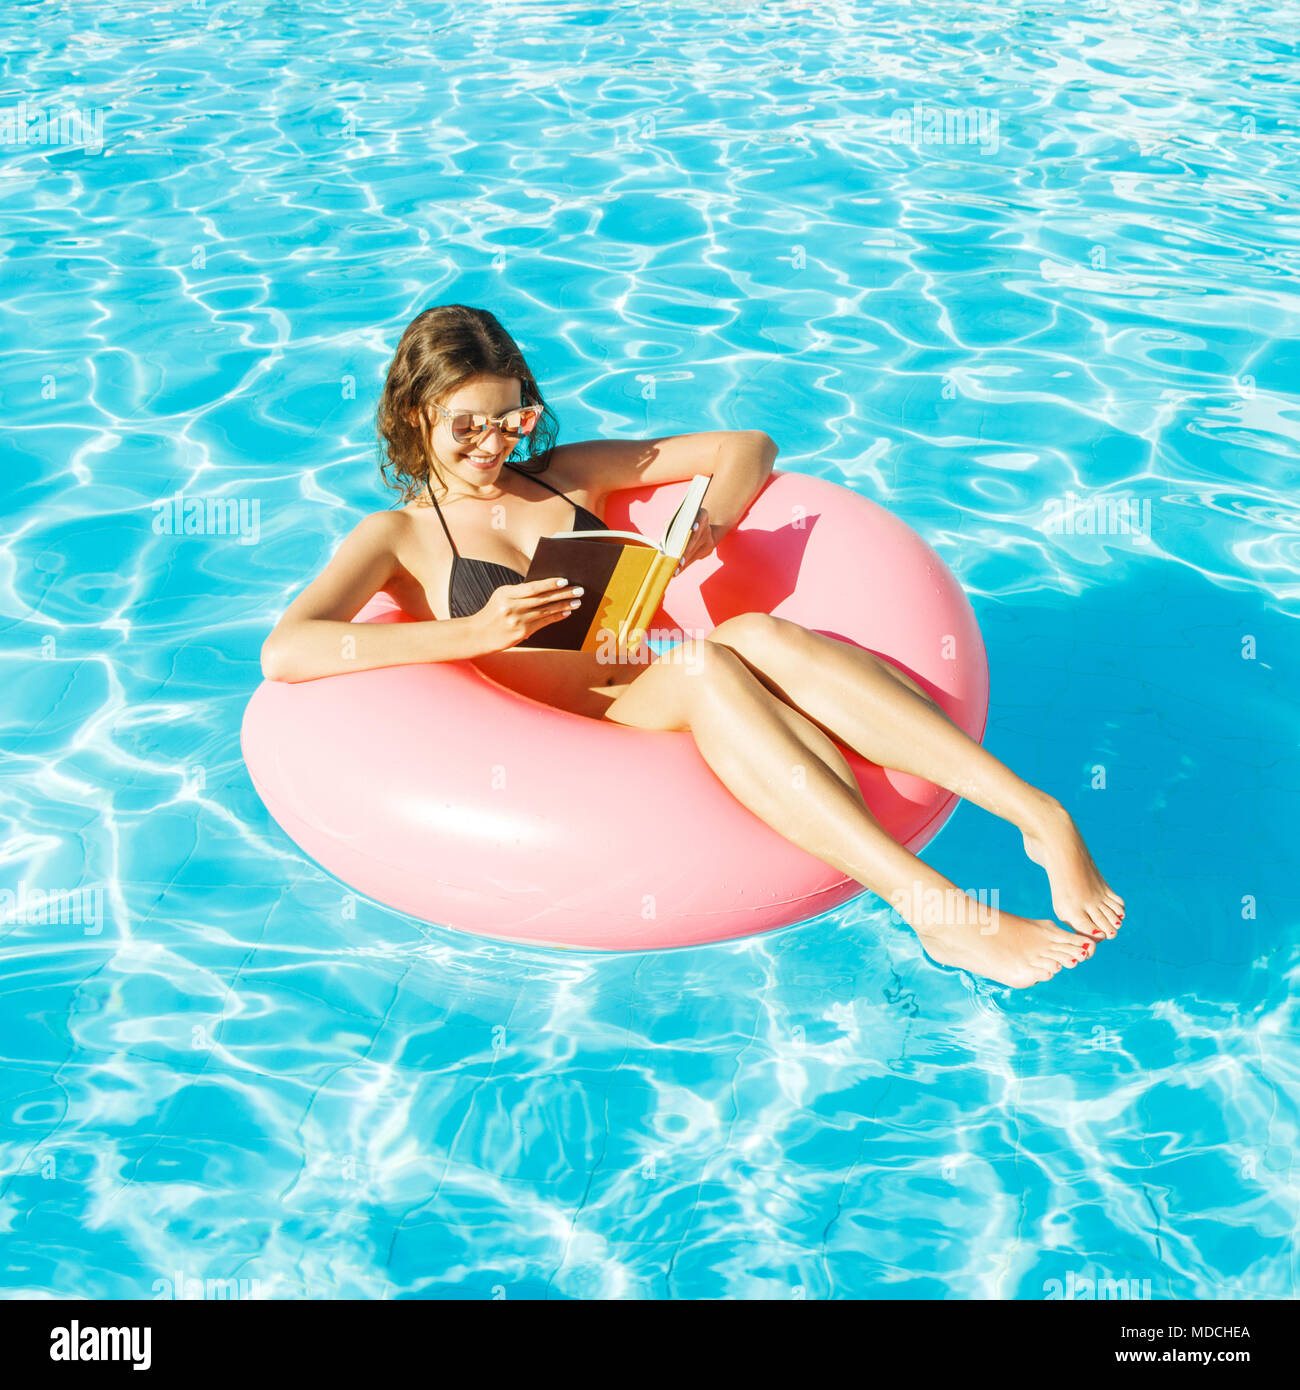 bikini girl with sunglasses relaxed and reading book on pink inflatable pool ring. - Stock Image